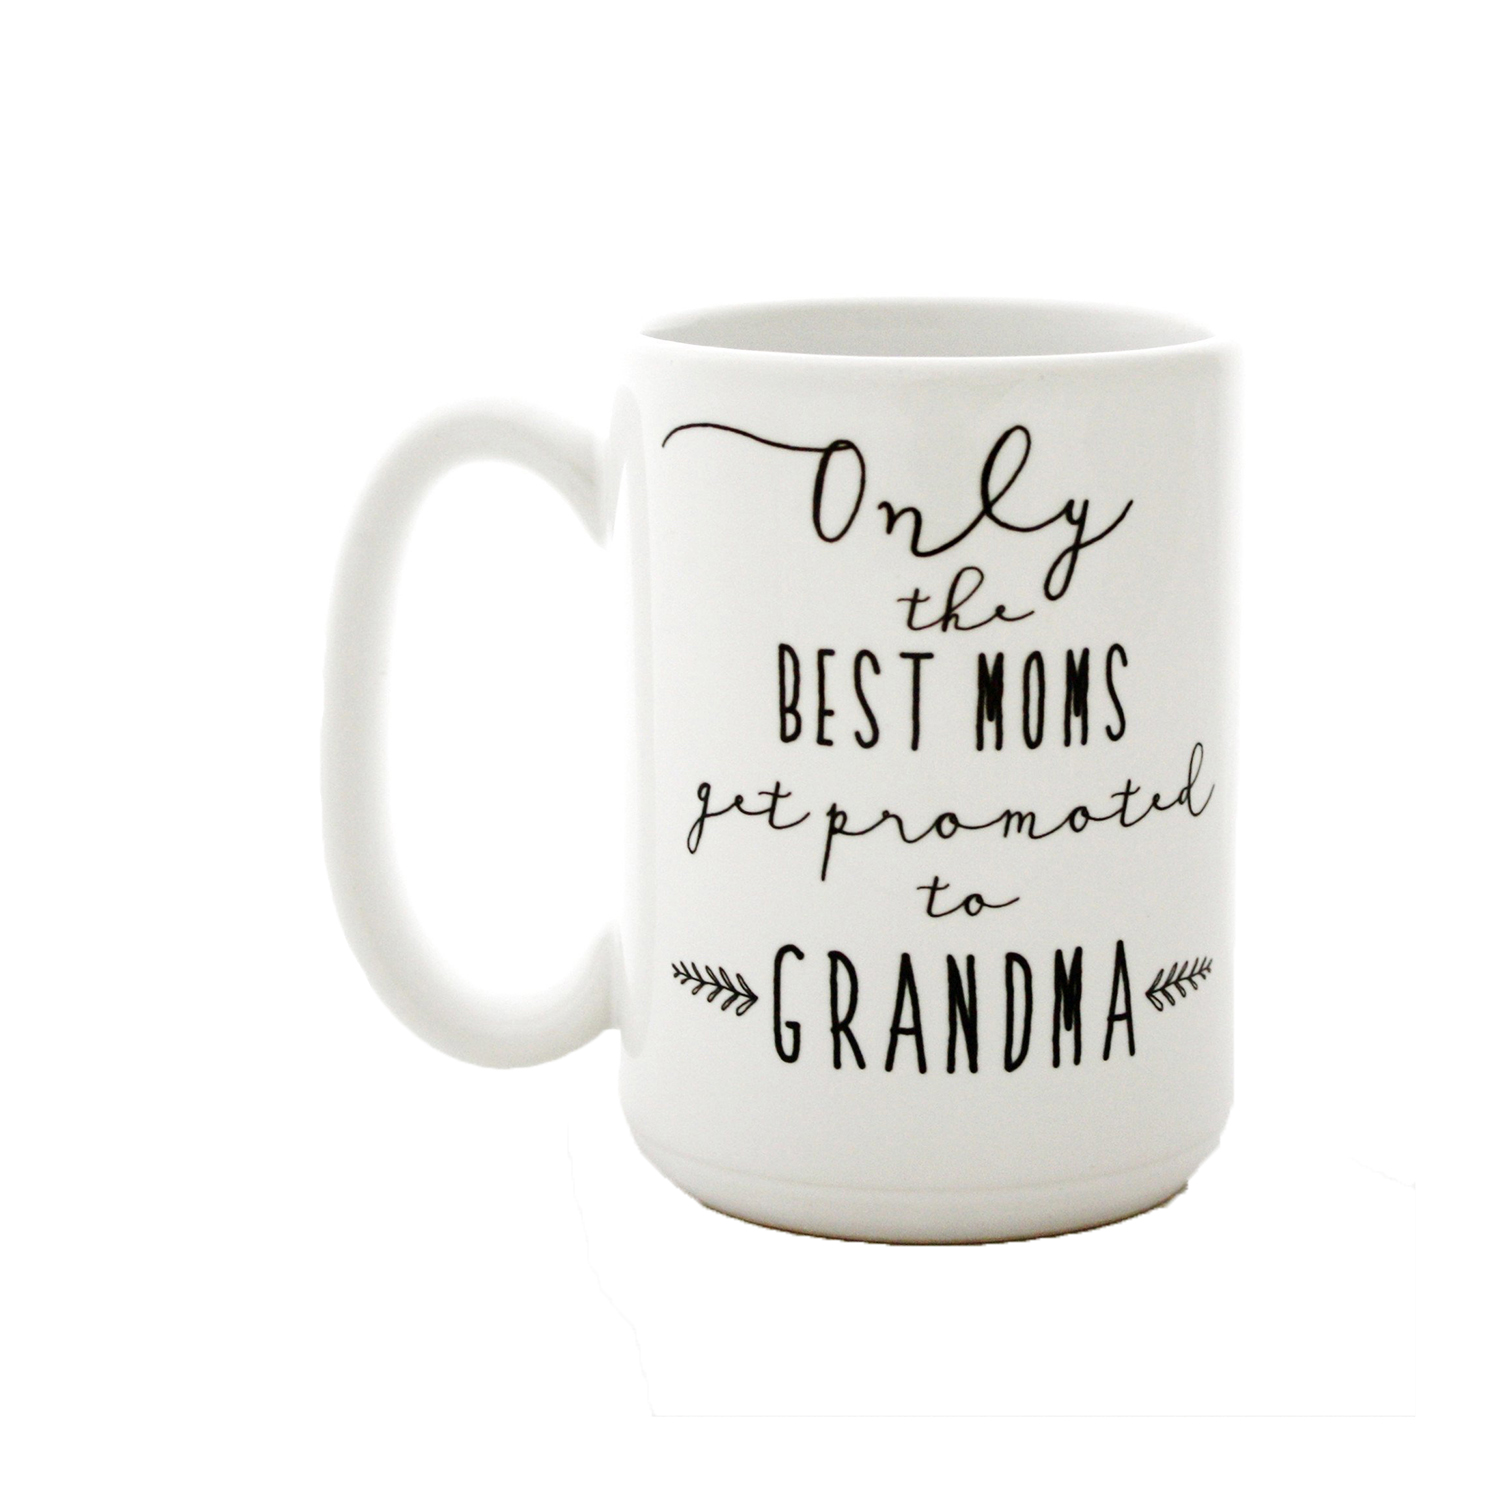 15 Mother\'s Day Gifts for Grandma That Are Sweet and Unique | Real ...